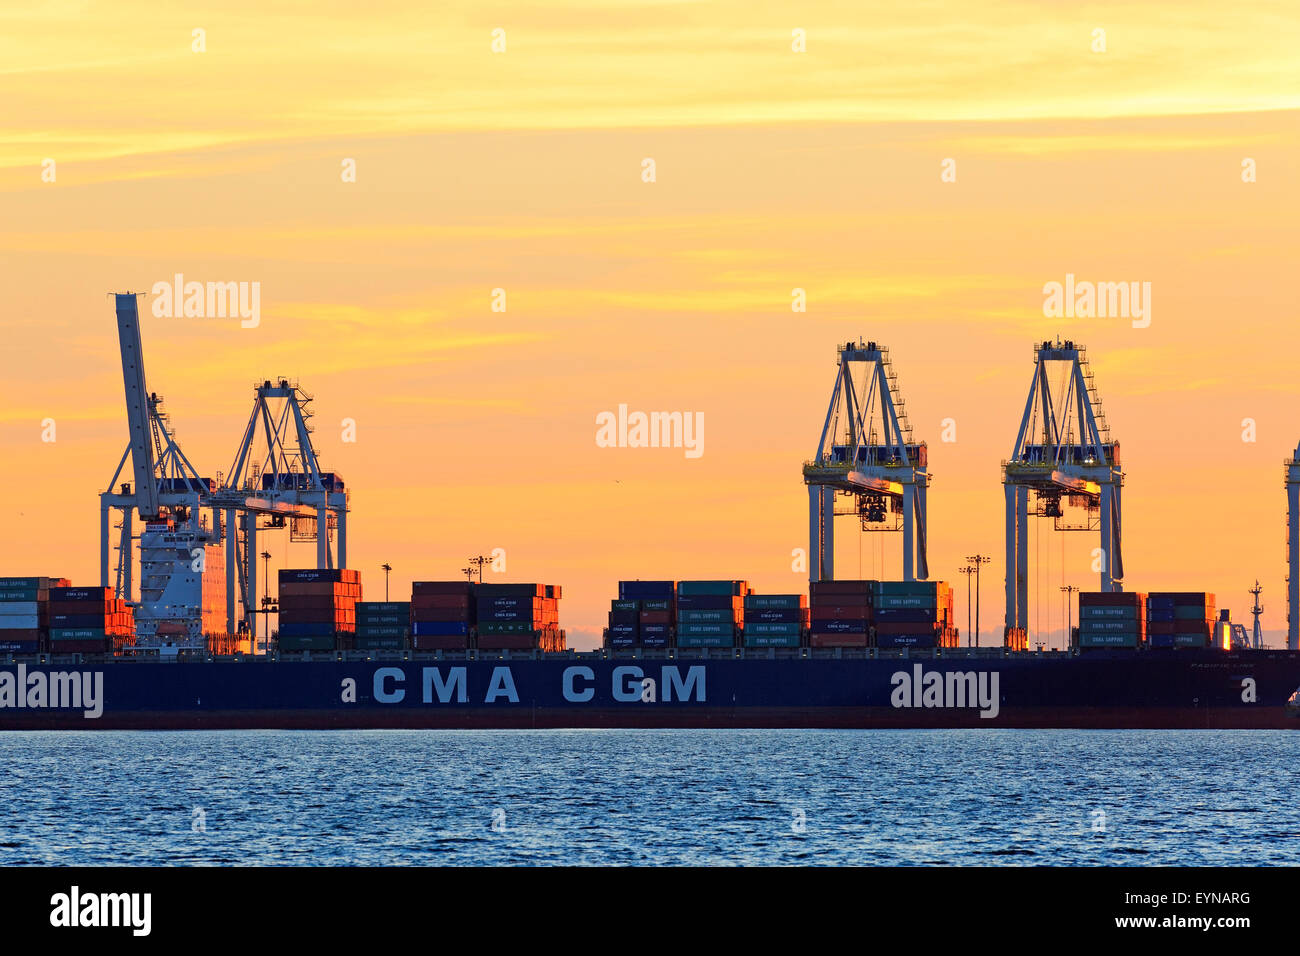 Container cranes atsunset, Deltaport container terminal, Roberts Bank, British Columbia - Stock Image